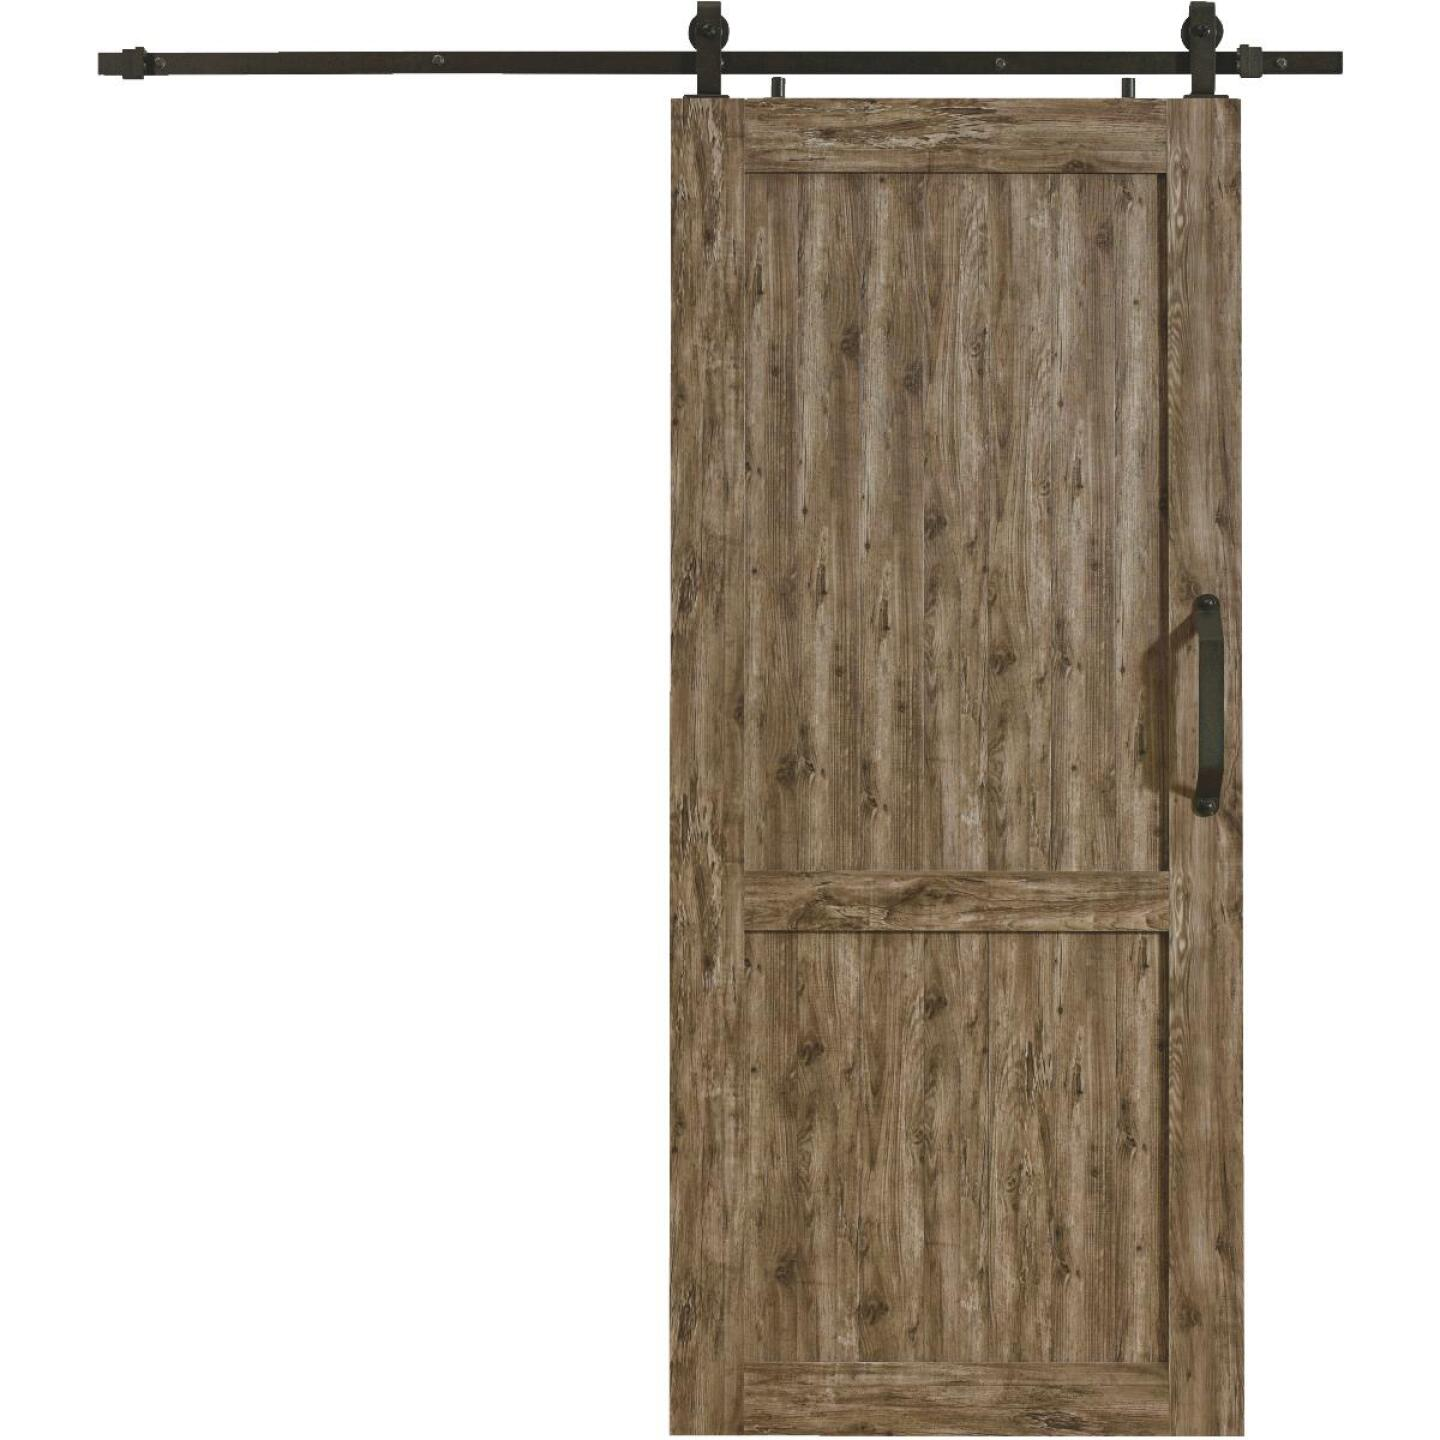 Millbrooke 42 In. x 84 In. x 1.3 In. H-Style Weathered Gray PVC Barn Door Kit Image 1